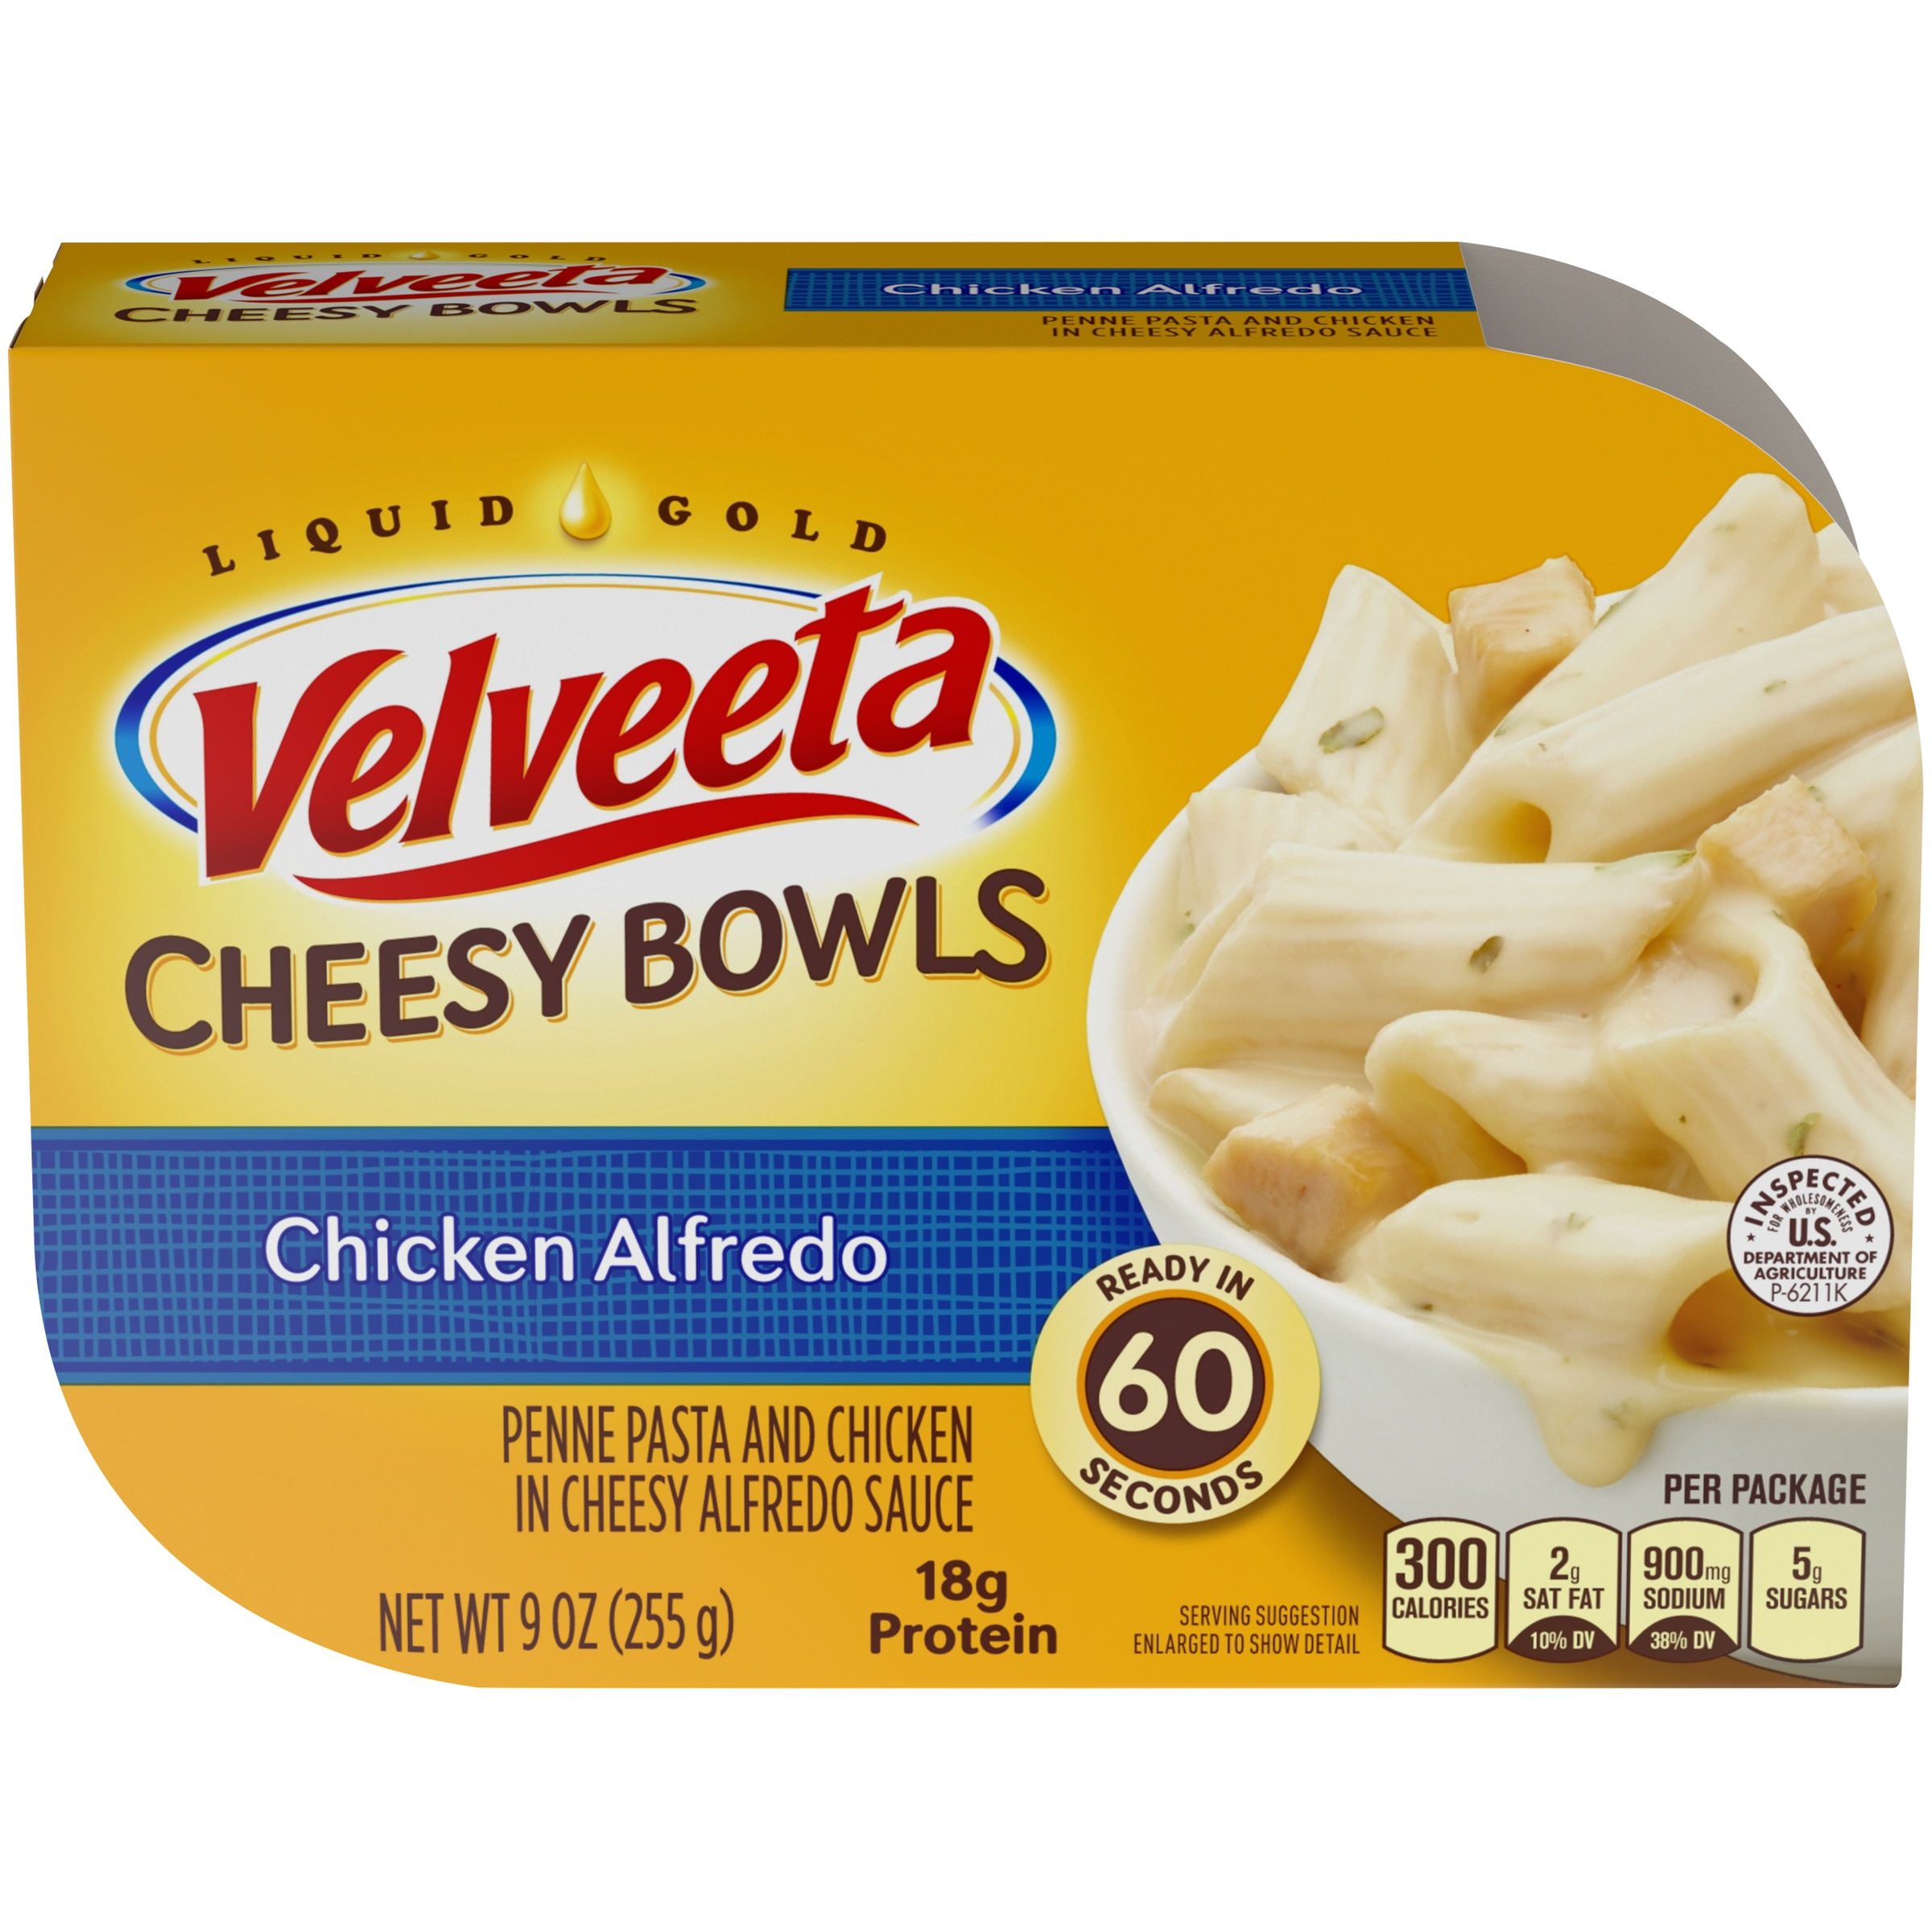 Velveeta Chicken Alfredo Cheesy Bowls 9 oz. Tray